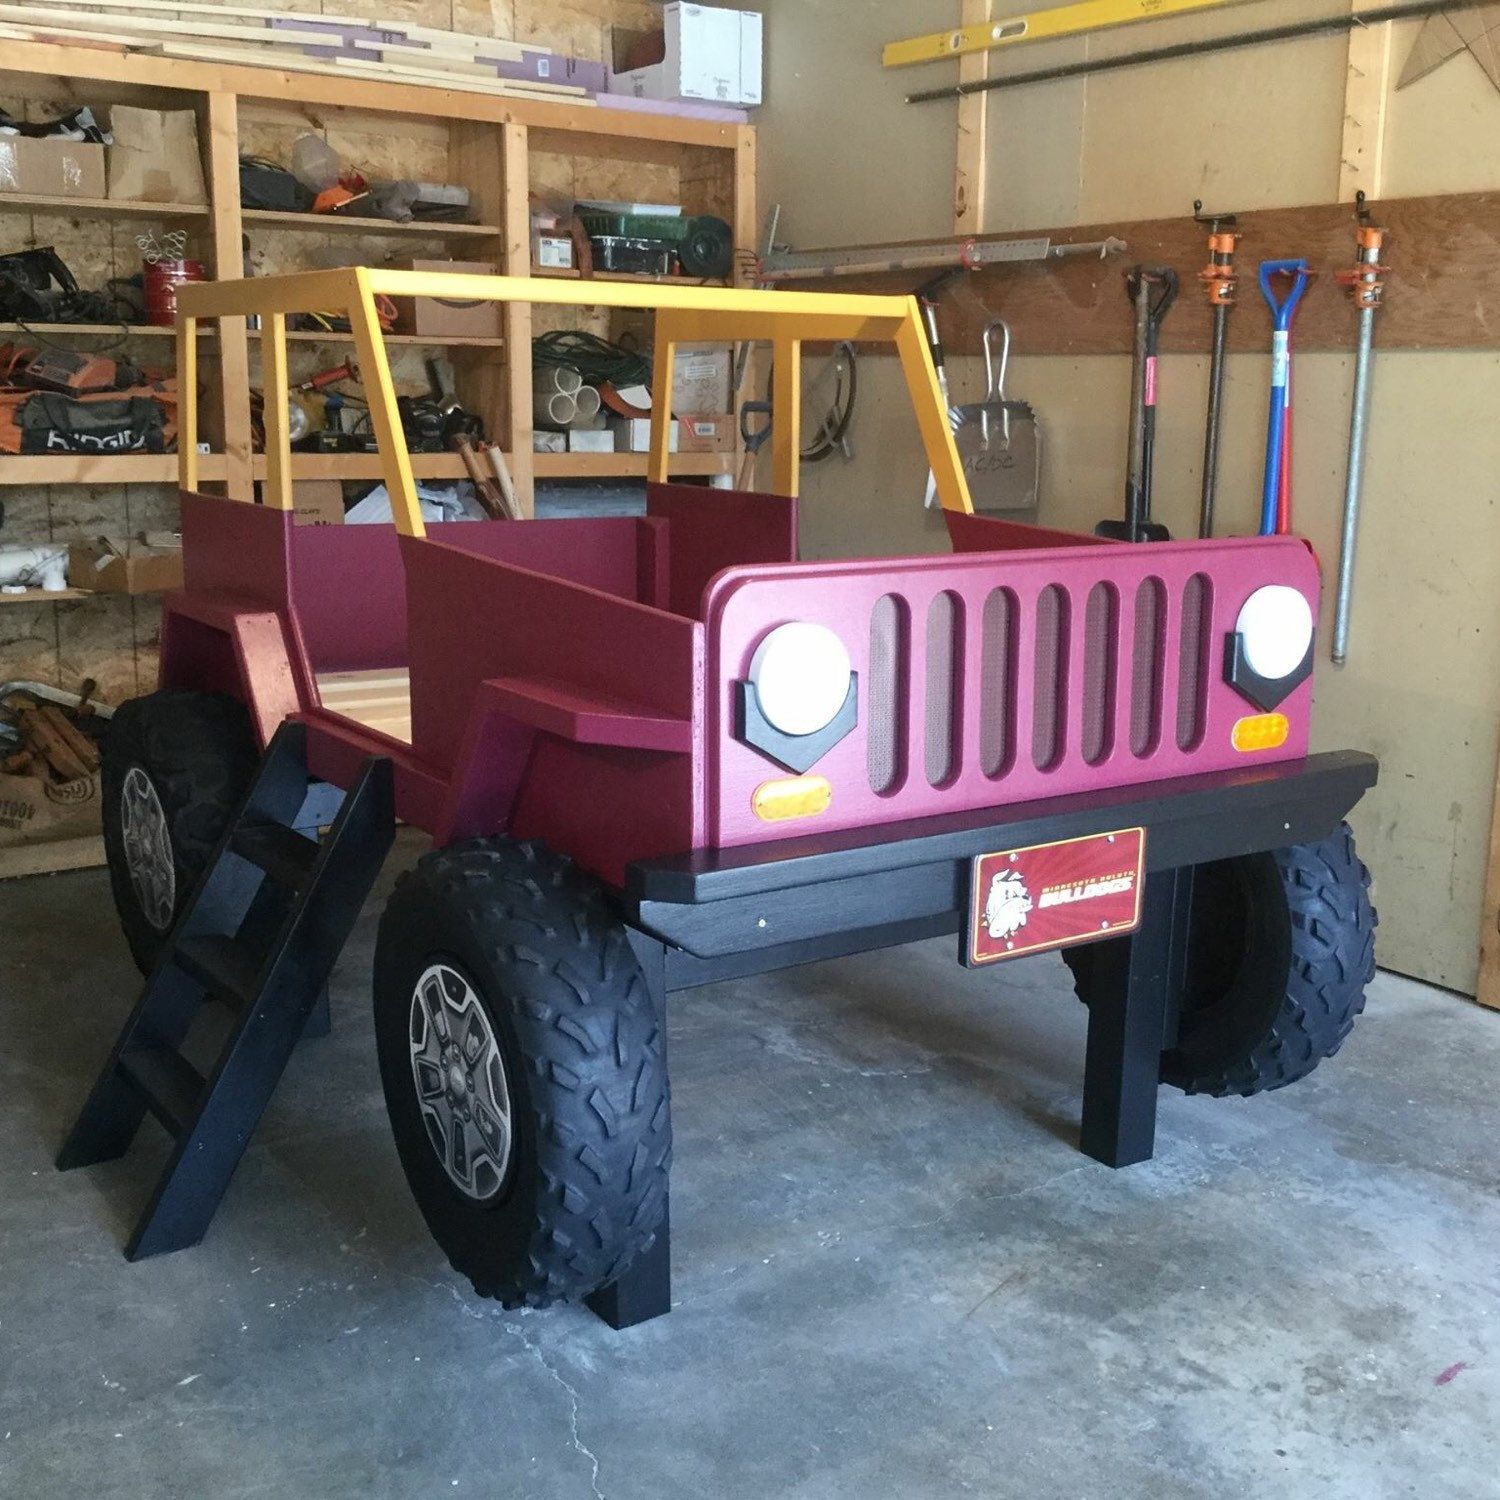 Jeep Bed Plans Twin Size Car Bed Cars, Car bed and Bed